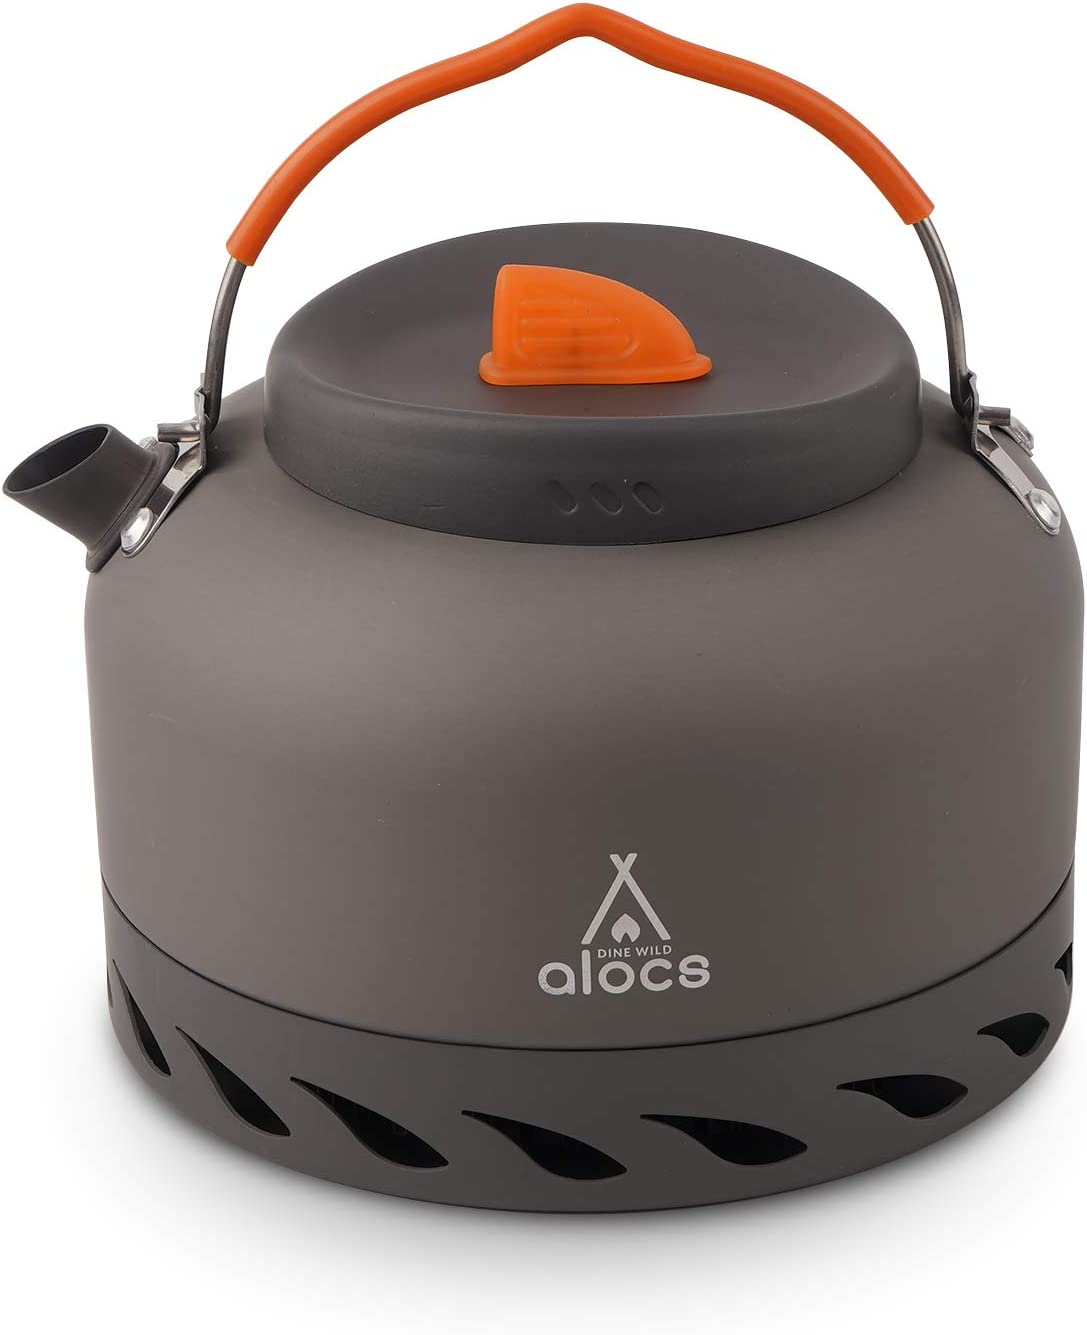 Alocs 1.3L Camping Kettle with Heat Exchanger